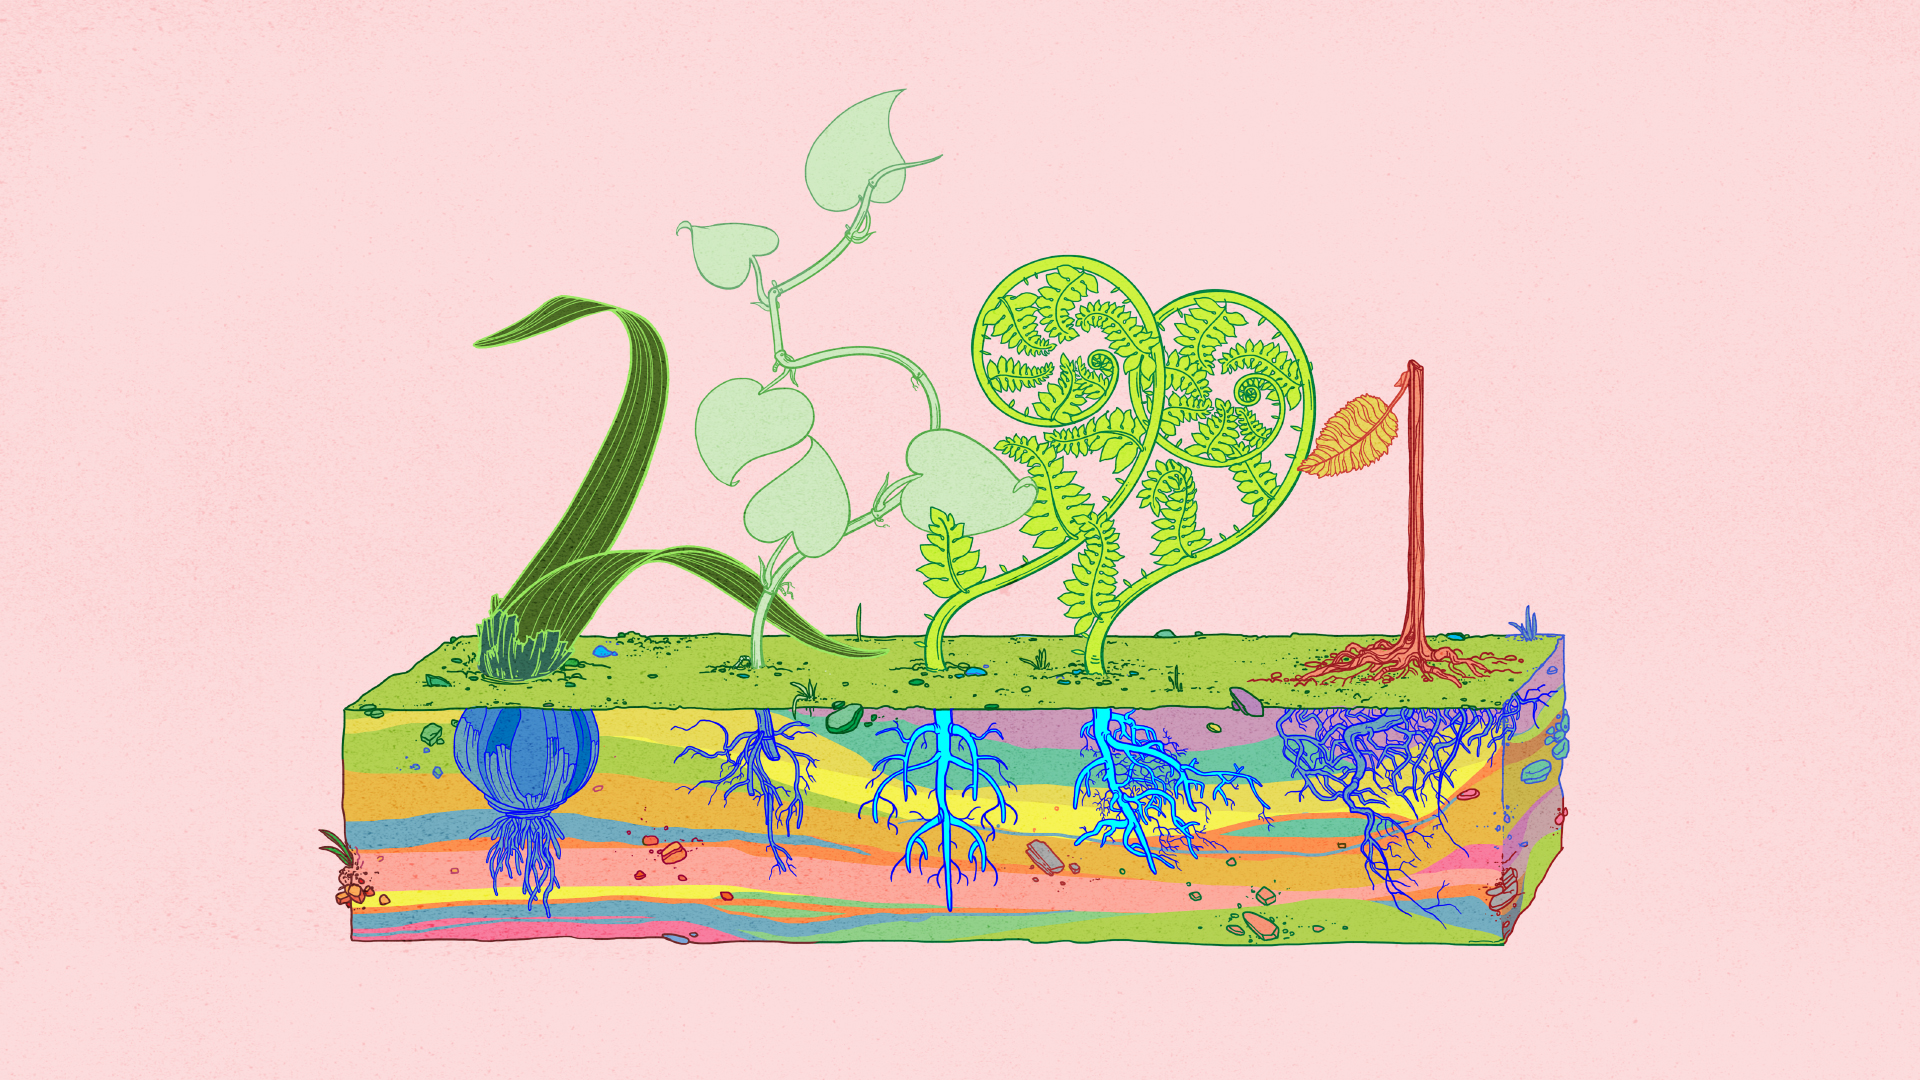 Colorful illustration of 5 plants with their roots exposed. Each plant forms the shape of a number,